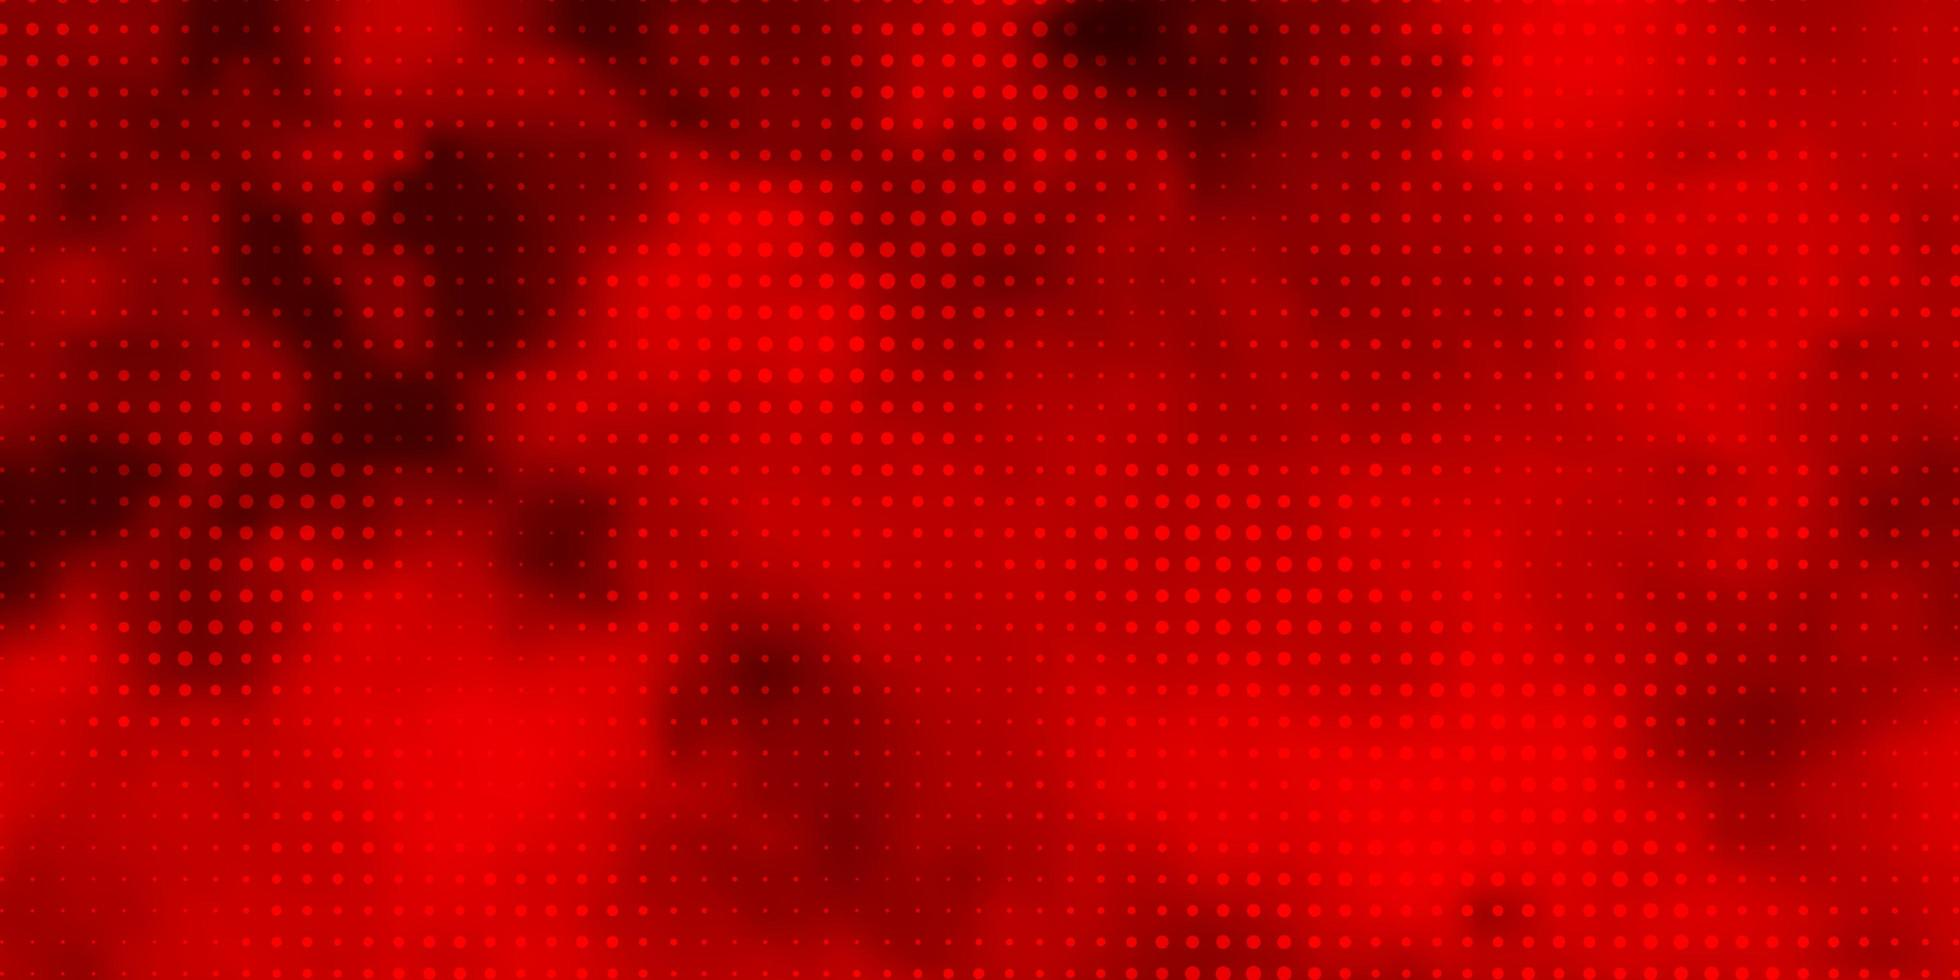 Light Red vector background with circles.